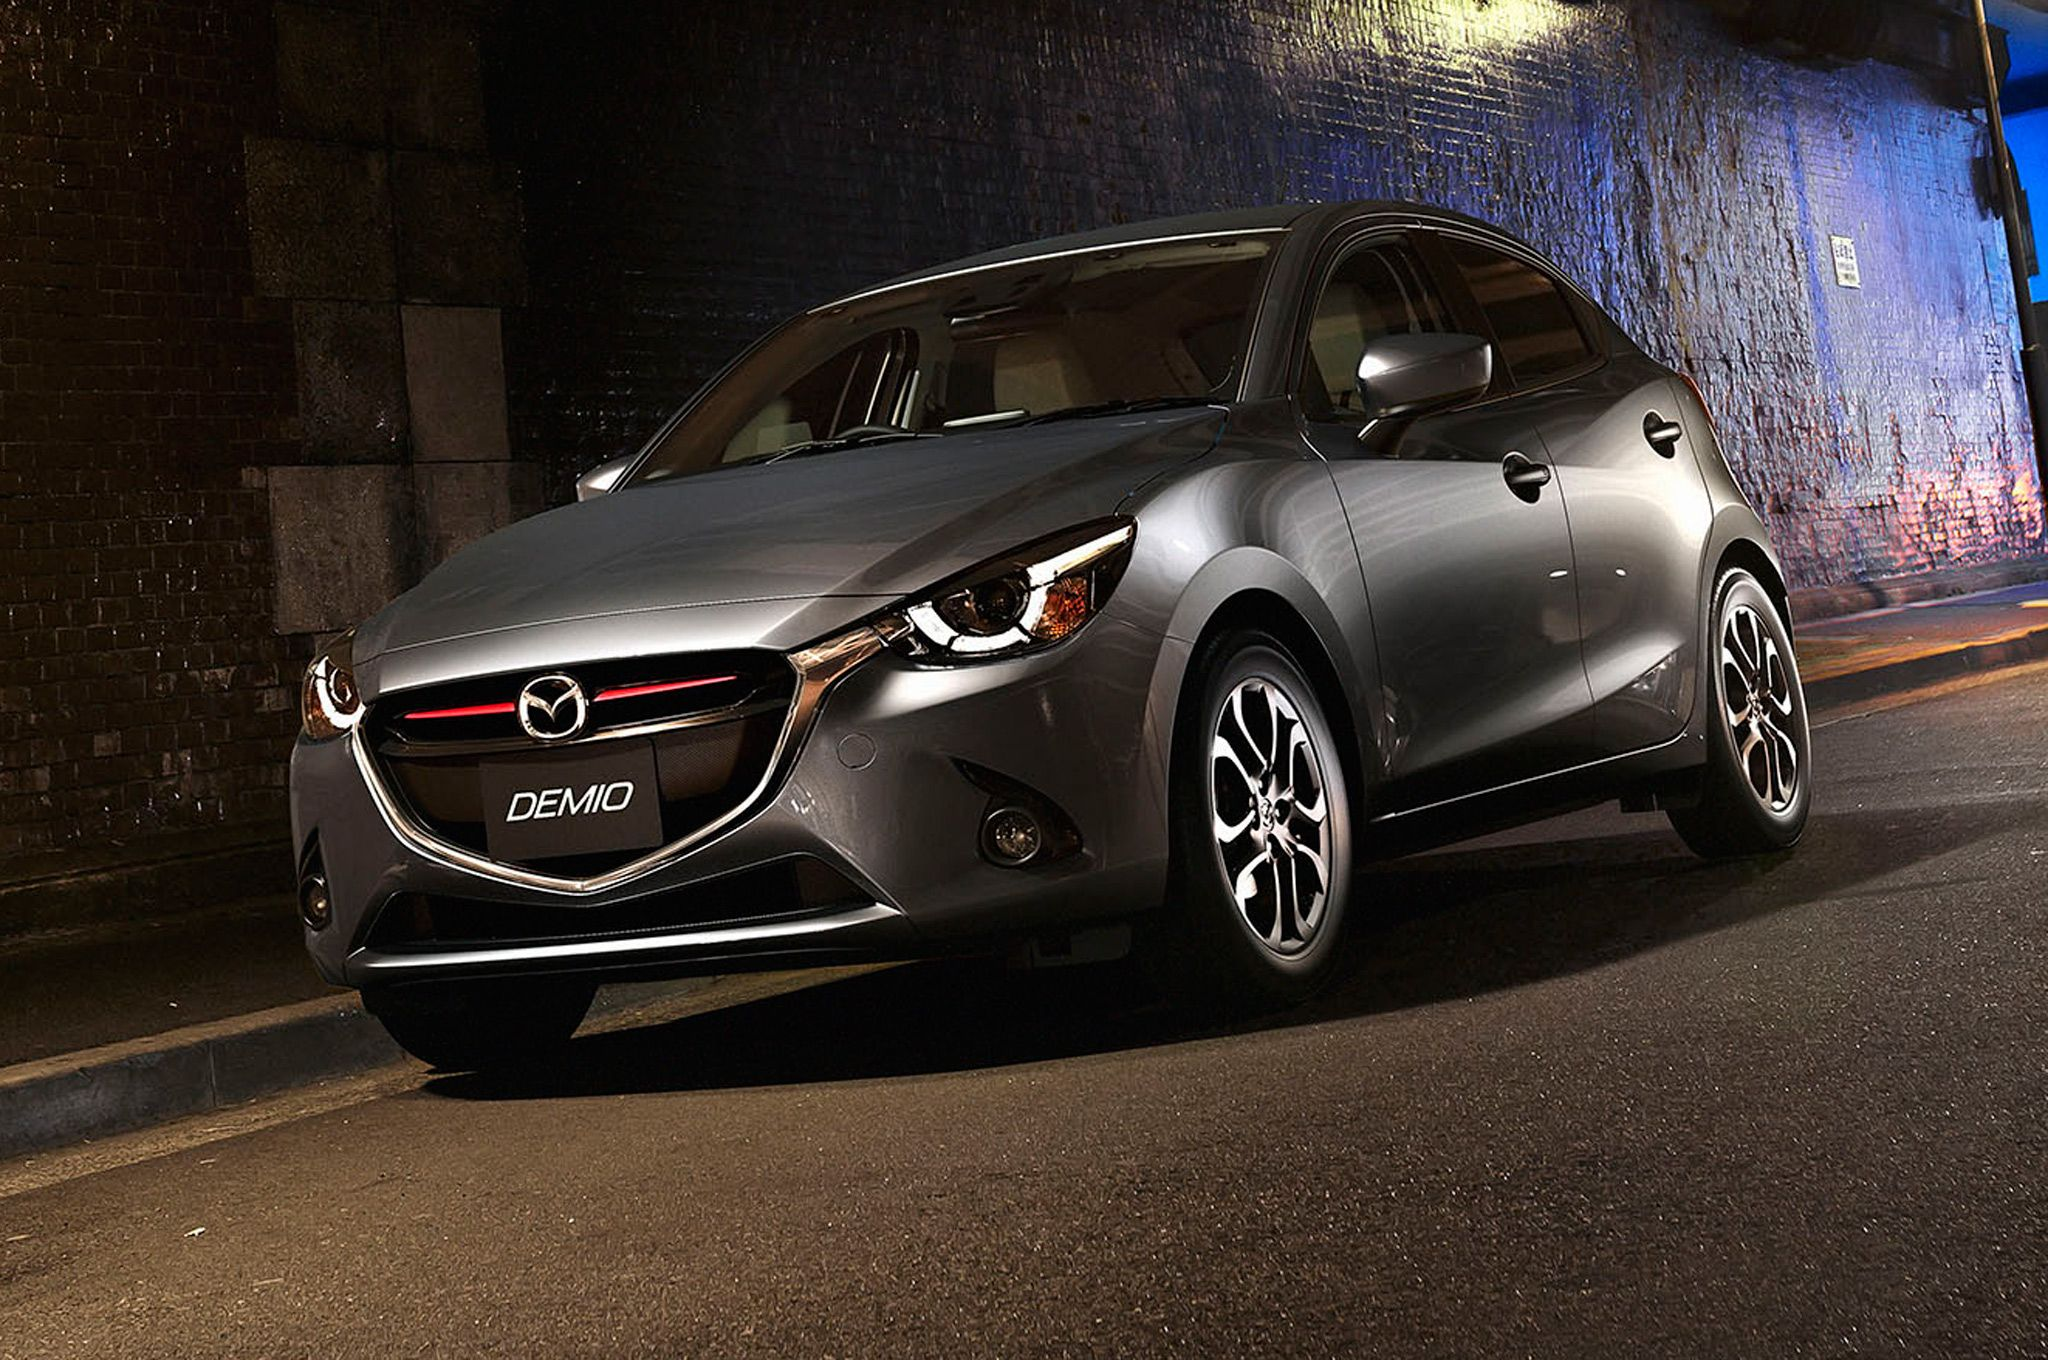 View 2016 mazda 2 unveiled instantly becomes least dorky subcompact extant photos from car and driver find high resolution car images in our photo gallery